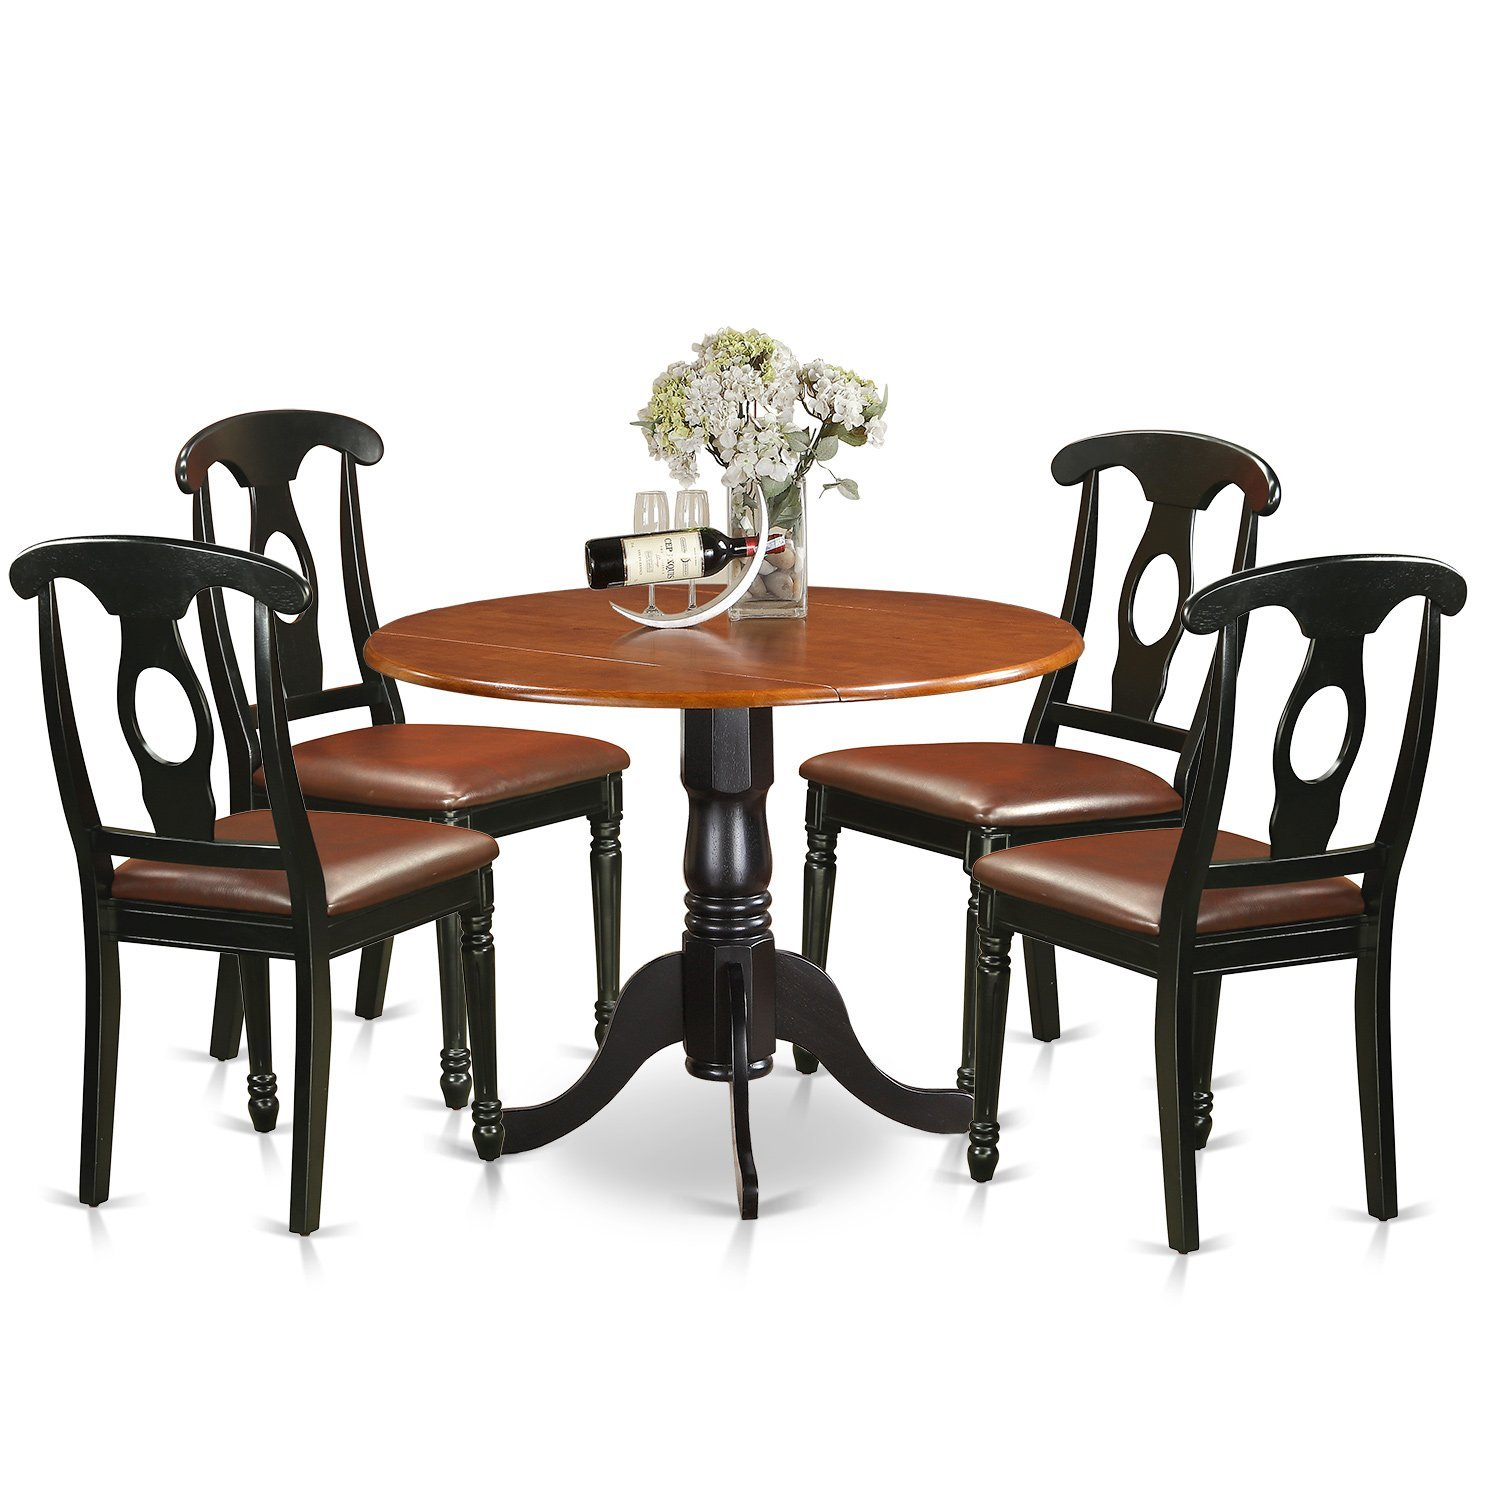 East West Furniture DLKE5-BCH-LC 5 Piece Small Kitchen Table and 4 Dining Chairs Dinette Set by East West Furniture